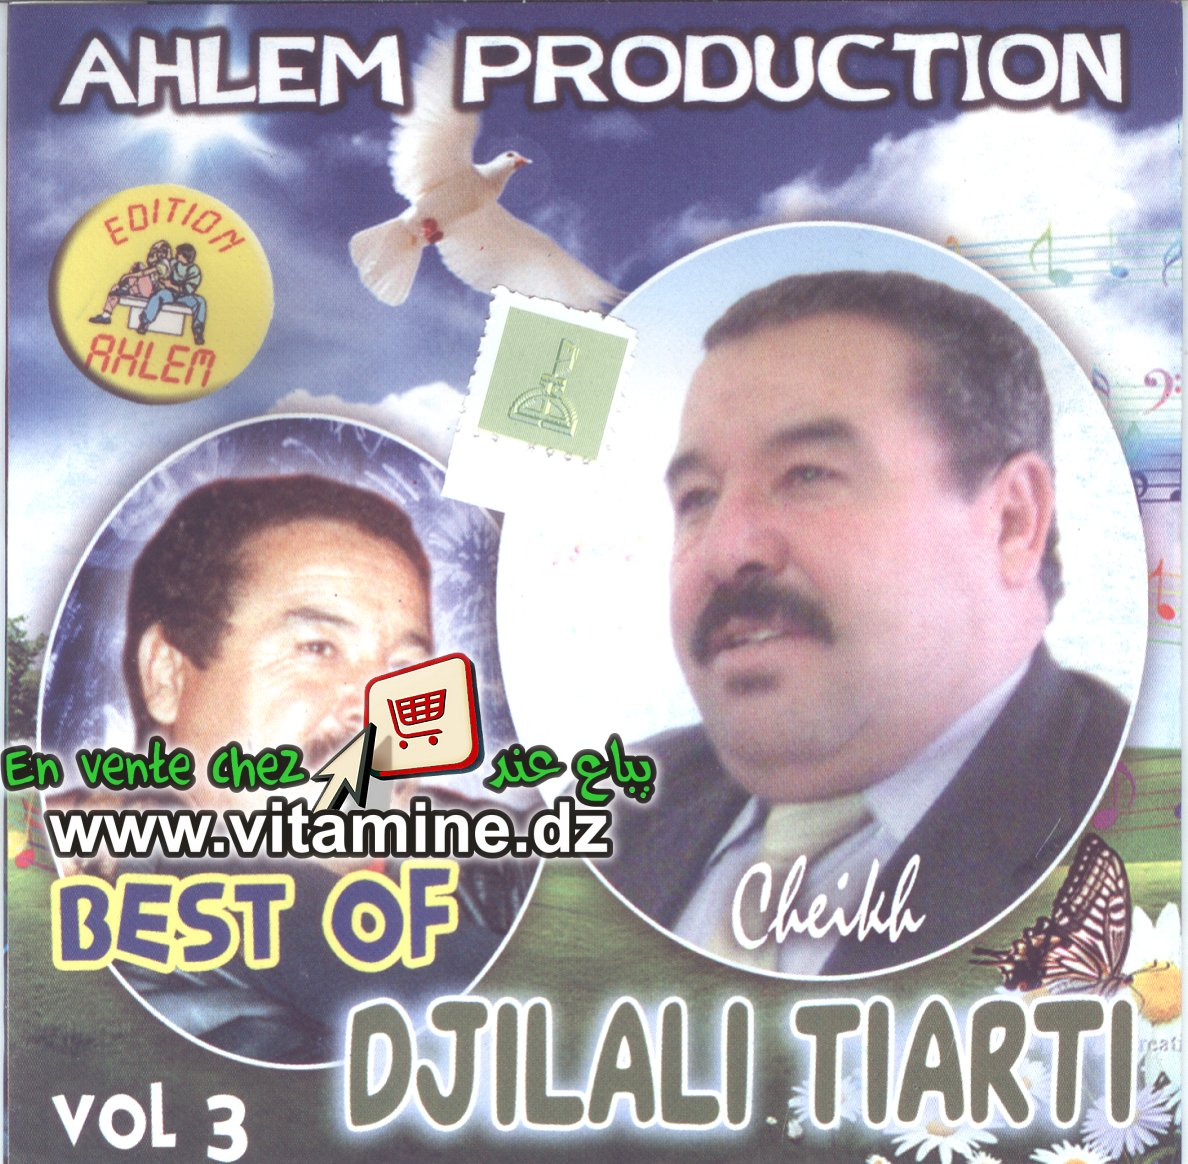 Cheikh Djilali Tiarti - Best of vol 3